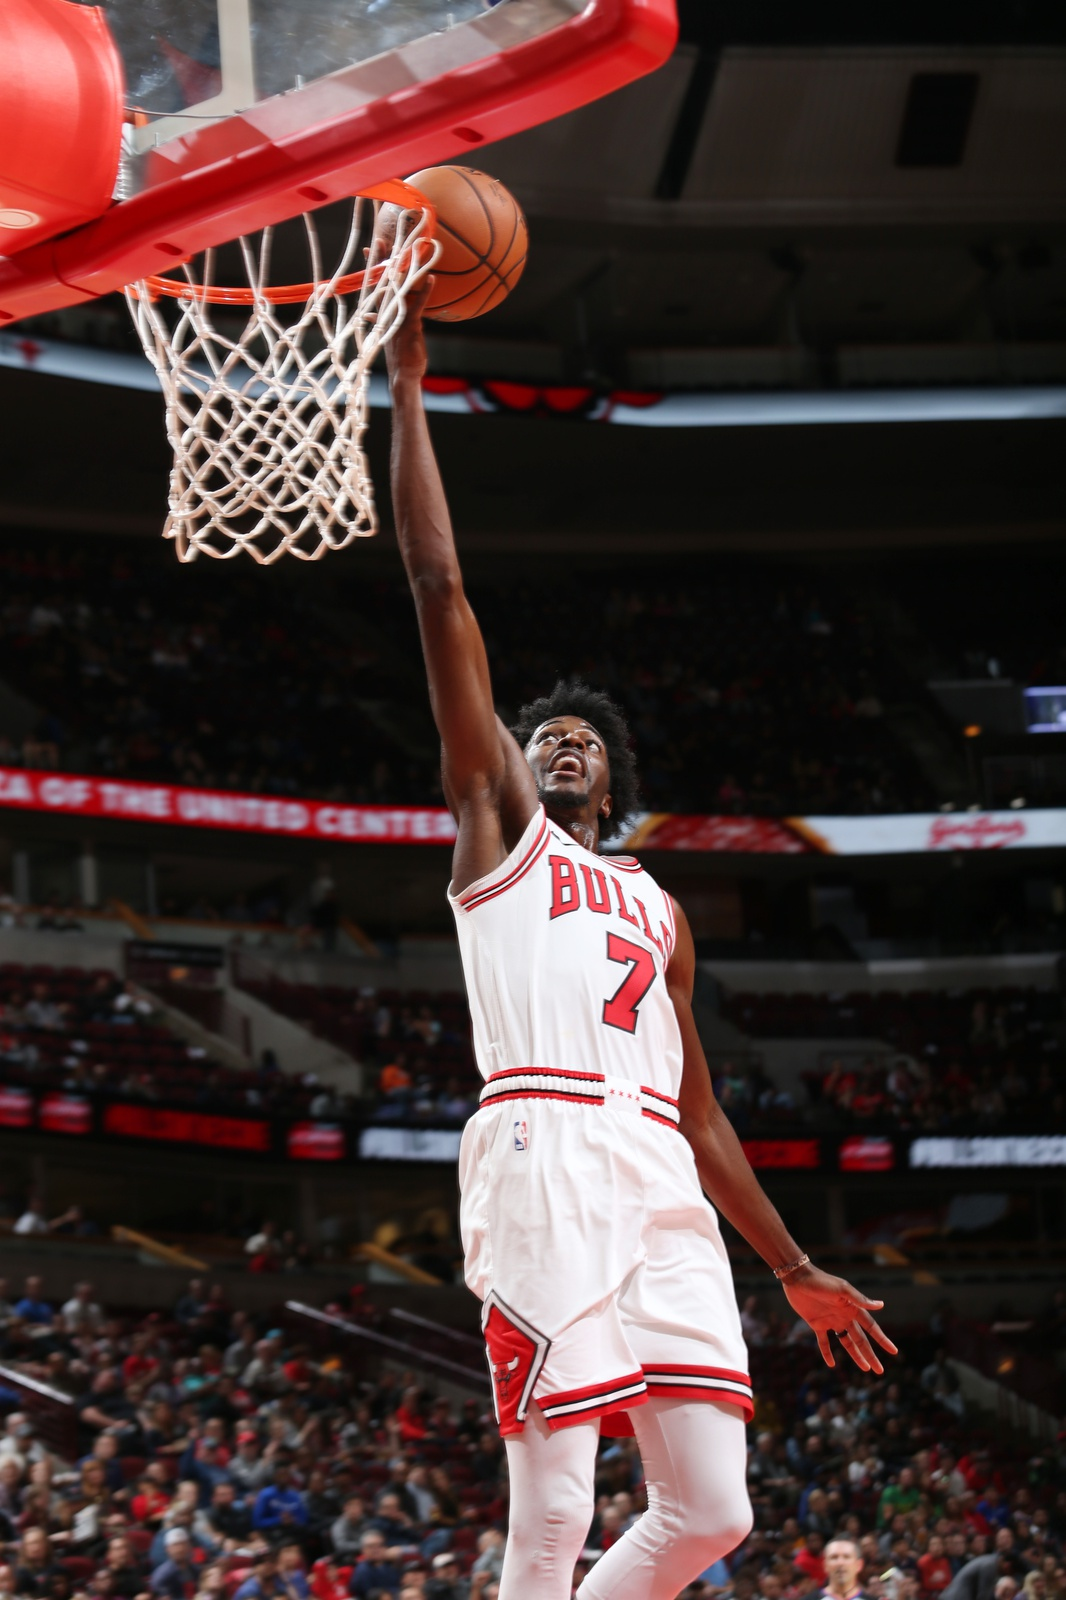 Justin Holiday #7 of the Chicago Bulls shoots the ball against the Indiana Pacers during a pre-season game on October 10, 2018 at the United Center in Chicago, Illinois.